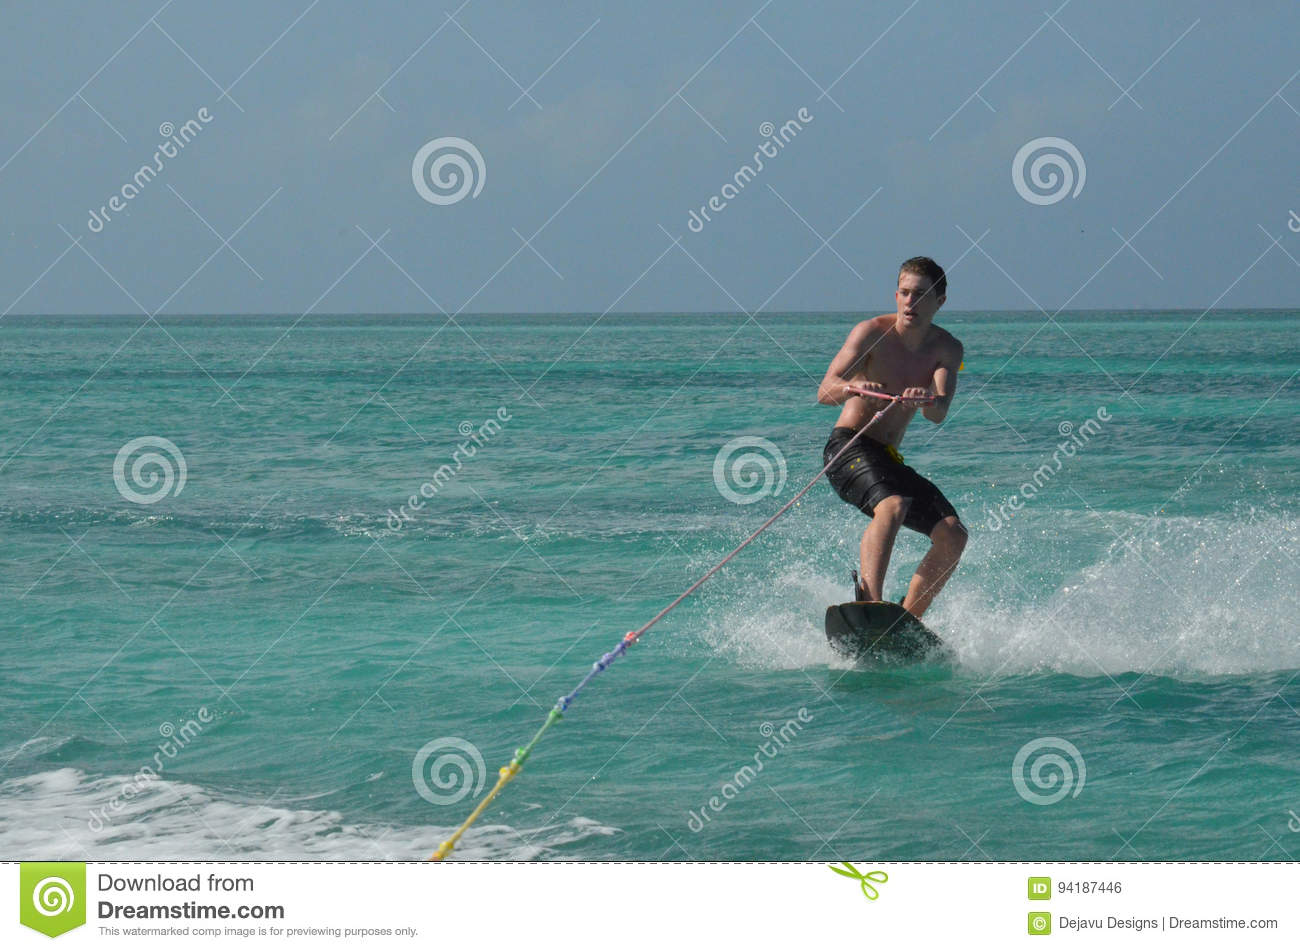 Boat Tow Rope Airhead Harness Stock Photo Wakeboarder Being Pulled Young Man Wakeboarding Behind Aruba Image 1300x951